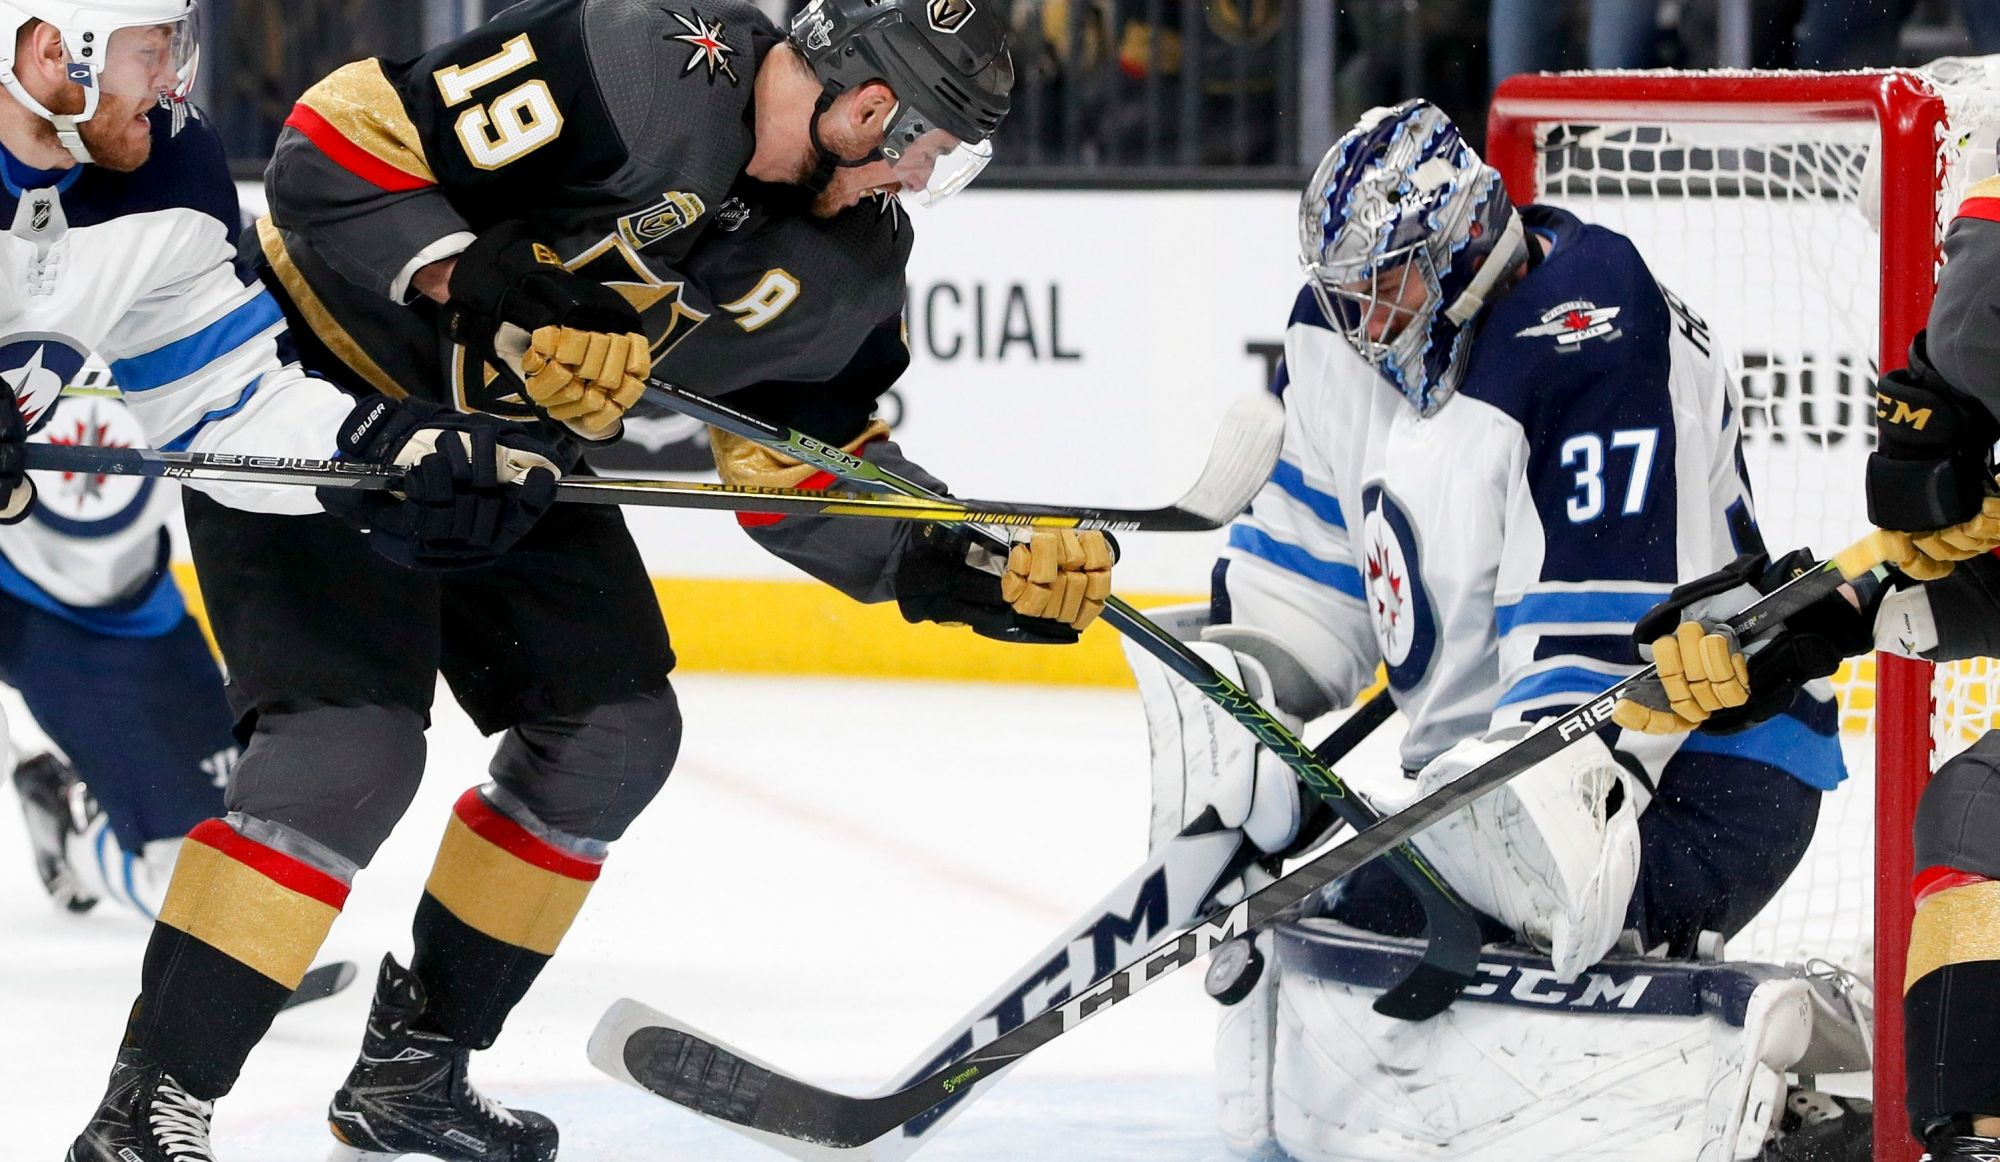 Les Golden Knights l'emportent 4-2 contre les Jets